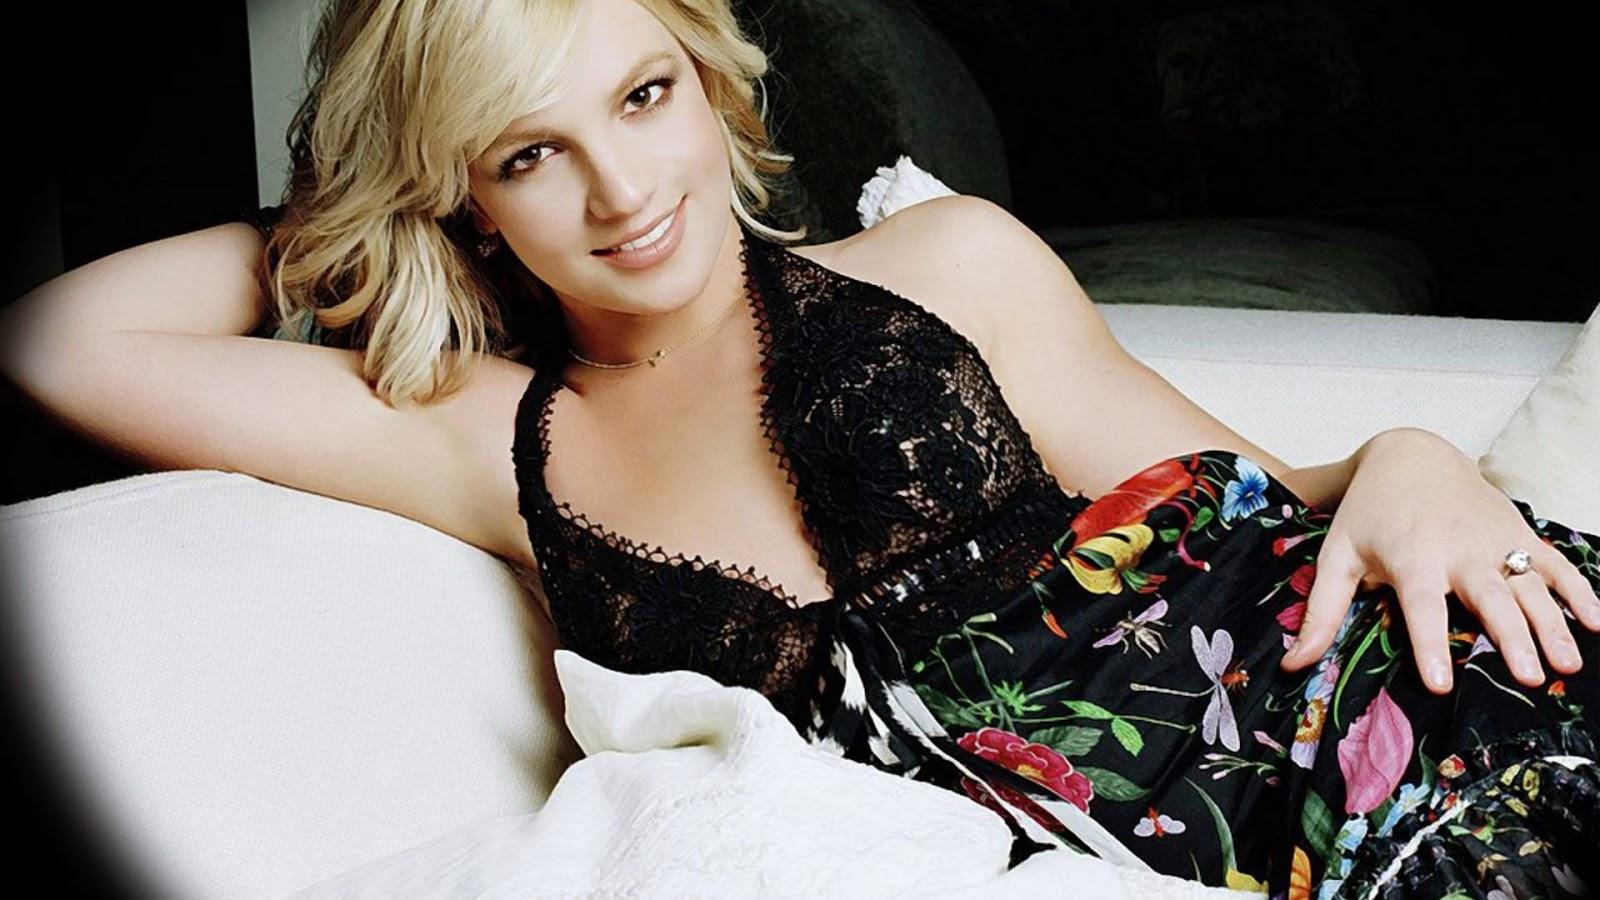 hd wallpapers britney spears hot wallpapers. Black Bedroom Furniture Sets. Home Design Ideas